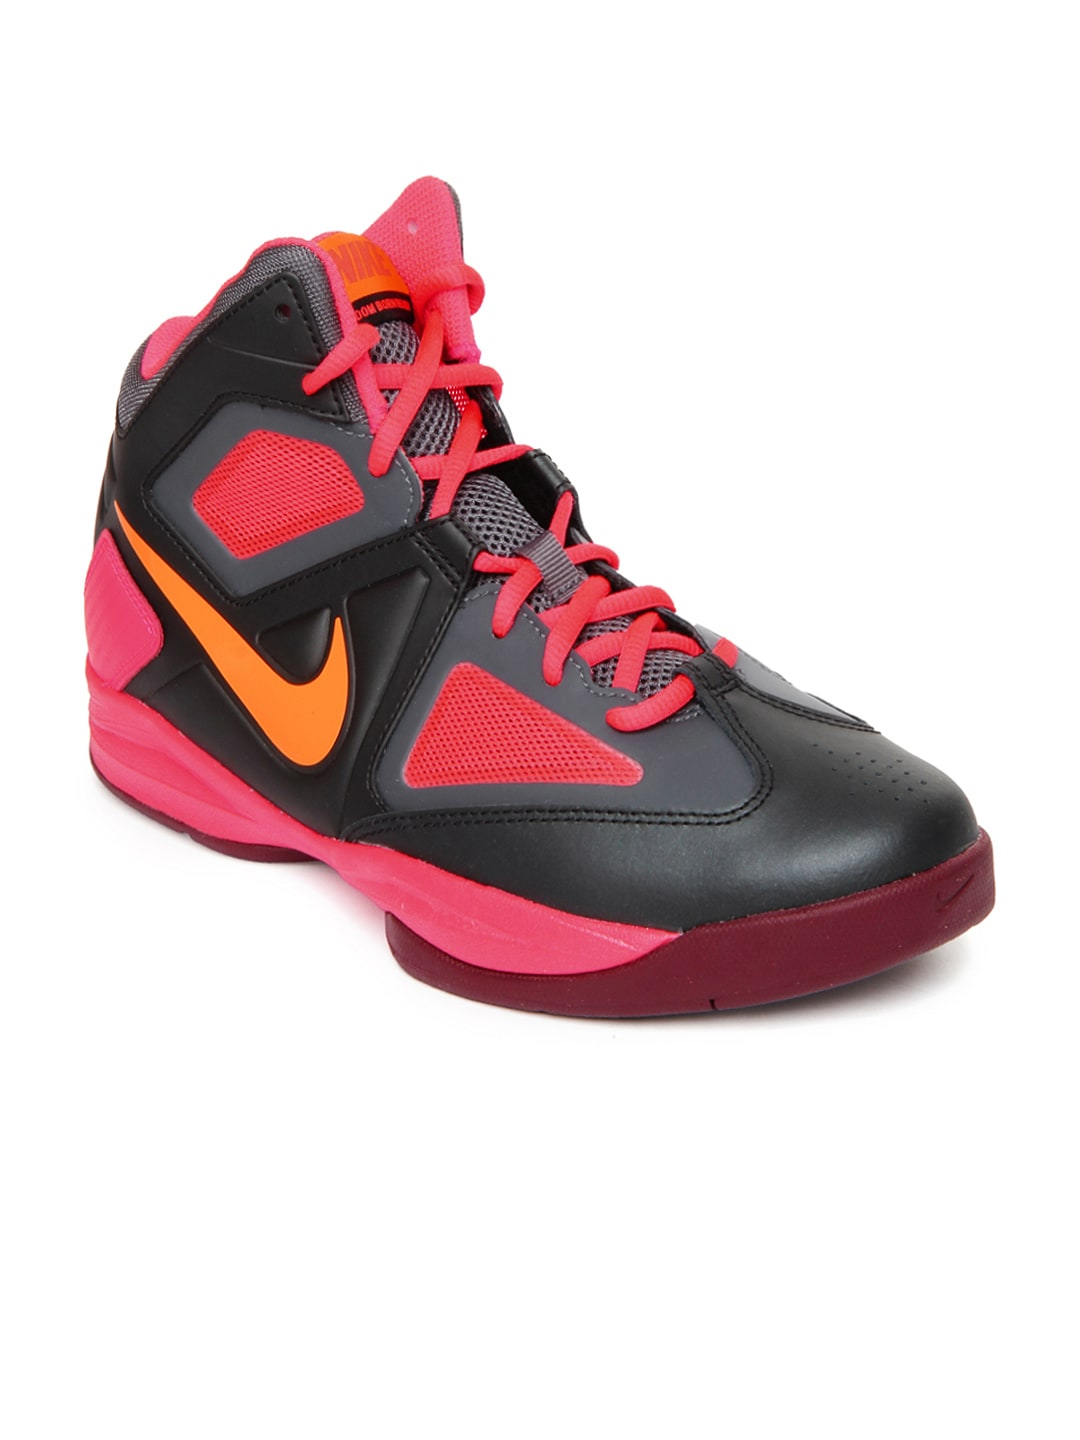 nike basketball shoes for basketball scores